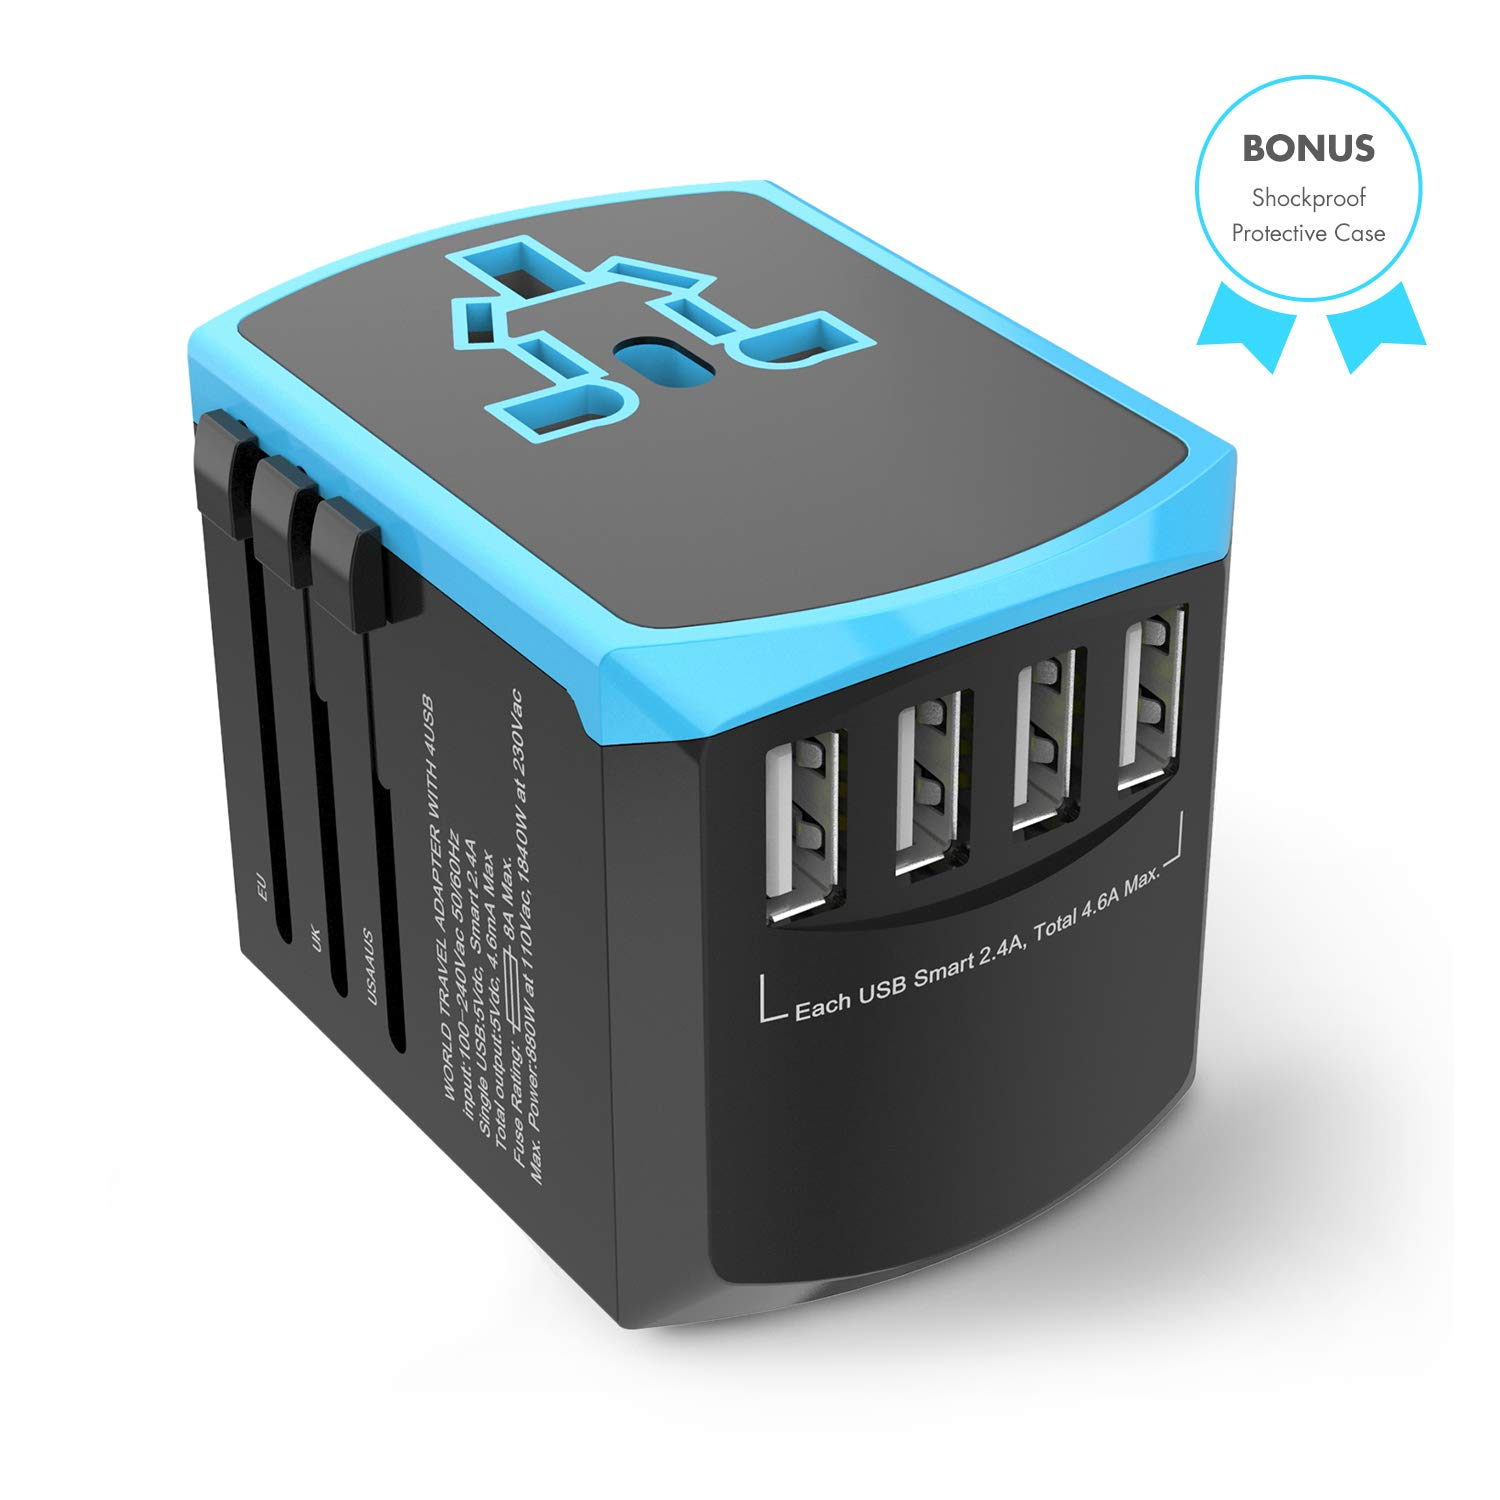 Universal Travel Adapter, All-in-one International Power Plugs with High Speed 2.4A 4 USB Wall Charging Ports for US, UK, EU, AU, Asia Covers 200+Countries